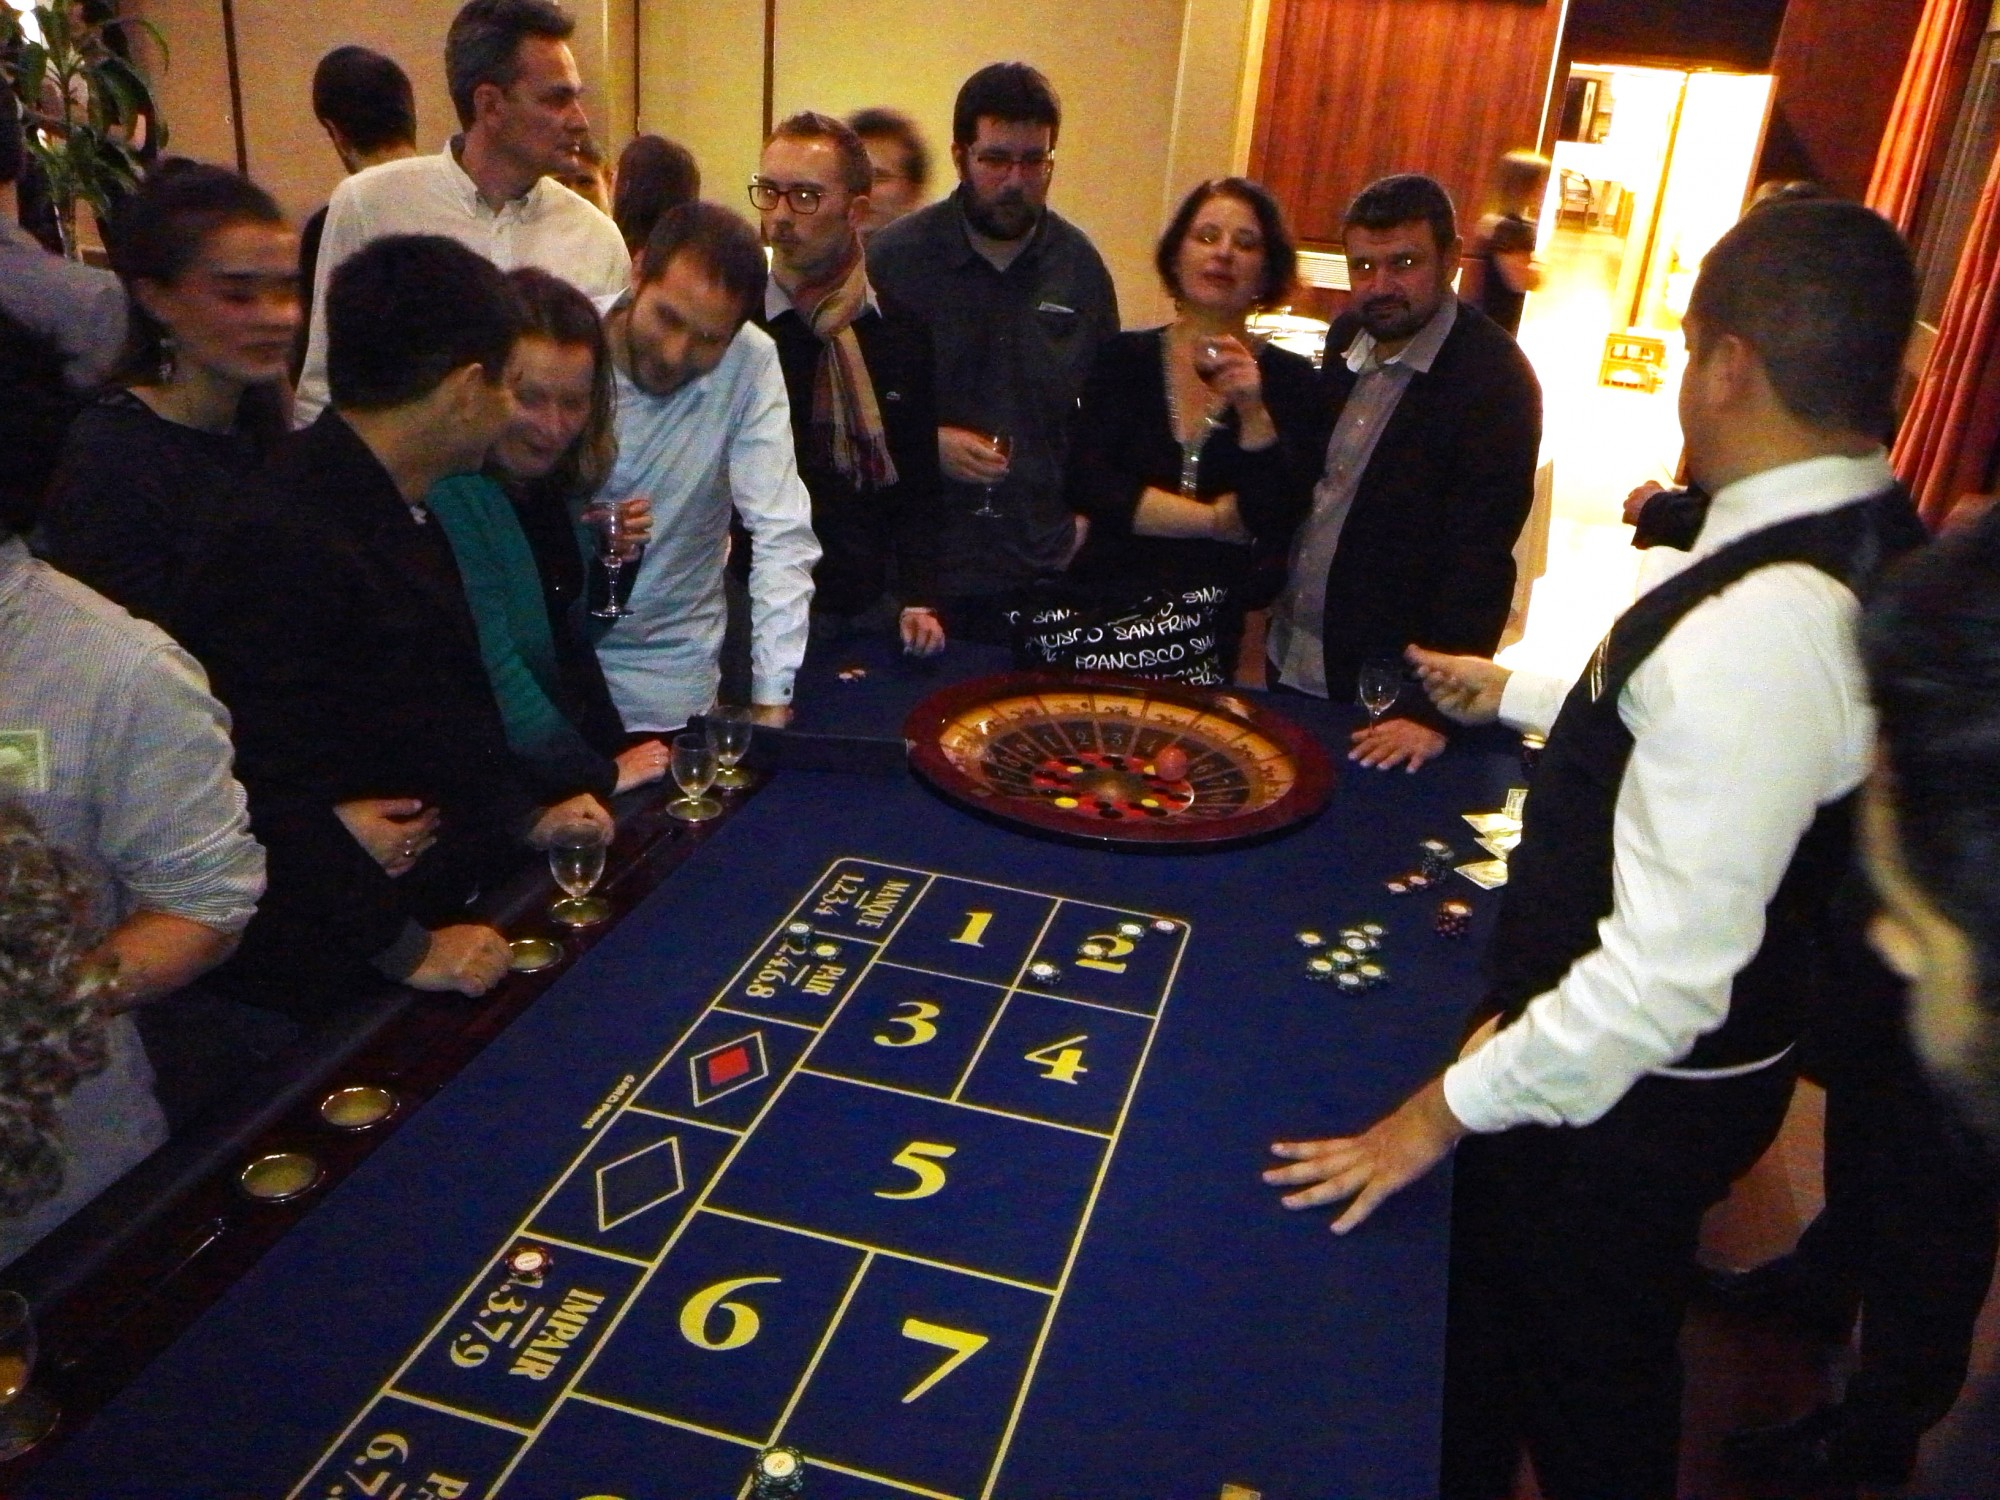 3 card poker table